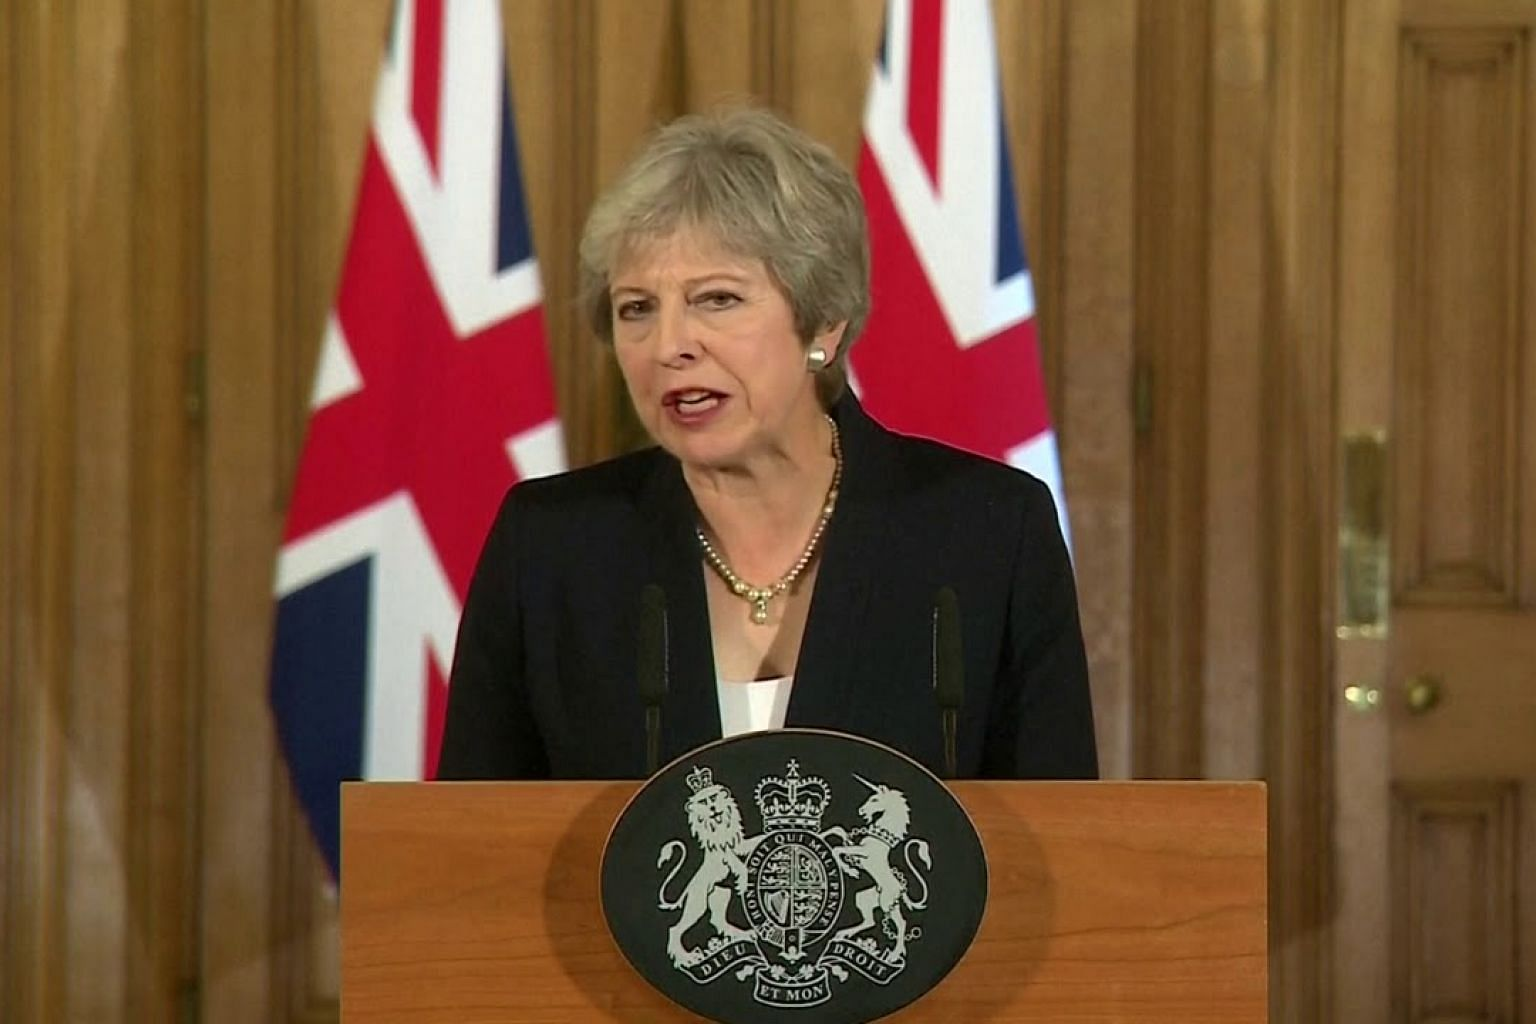 Theresa May says Brexit talks have hit an impasse